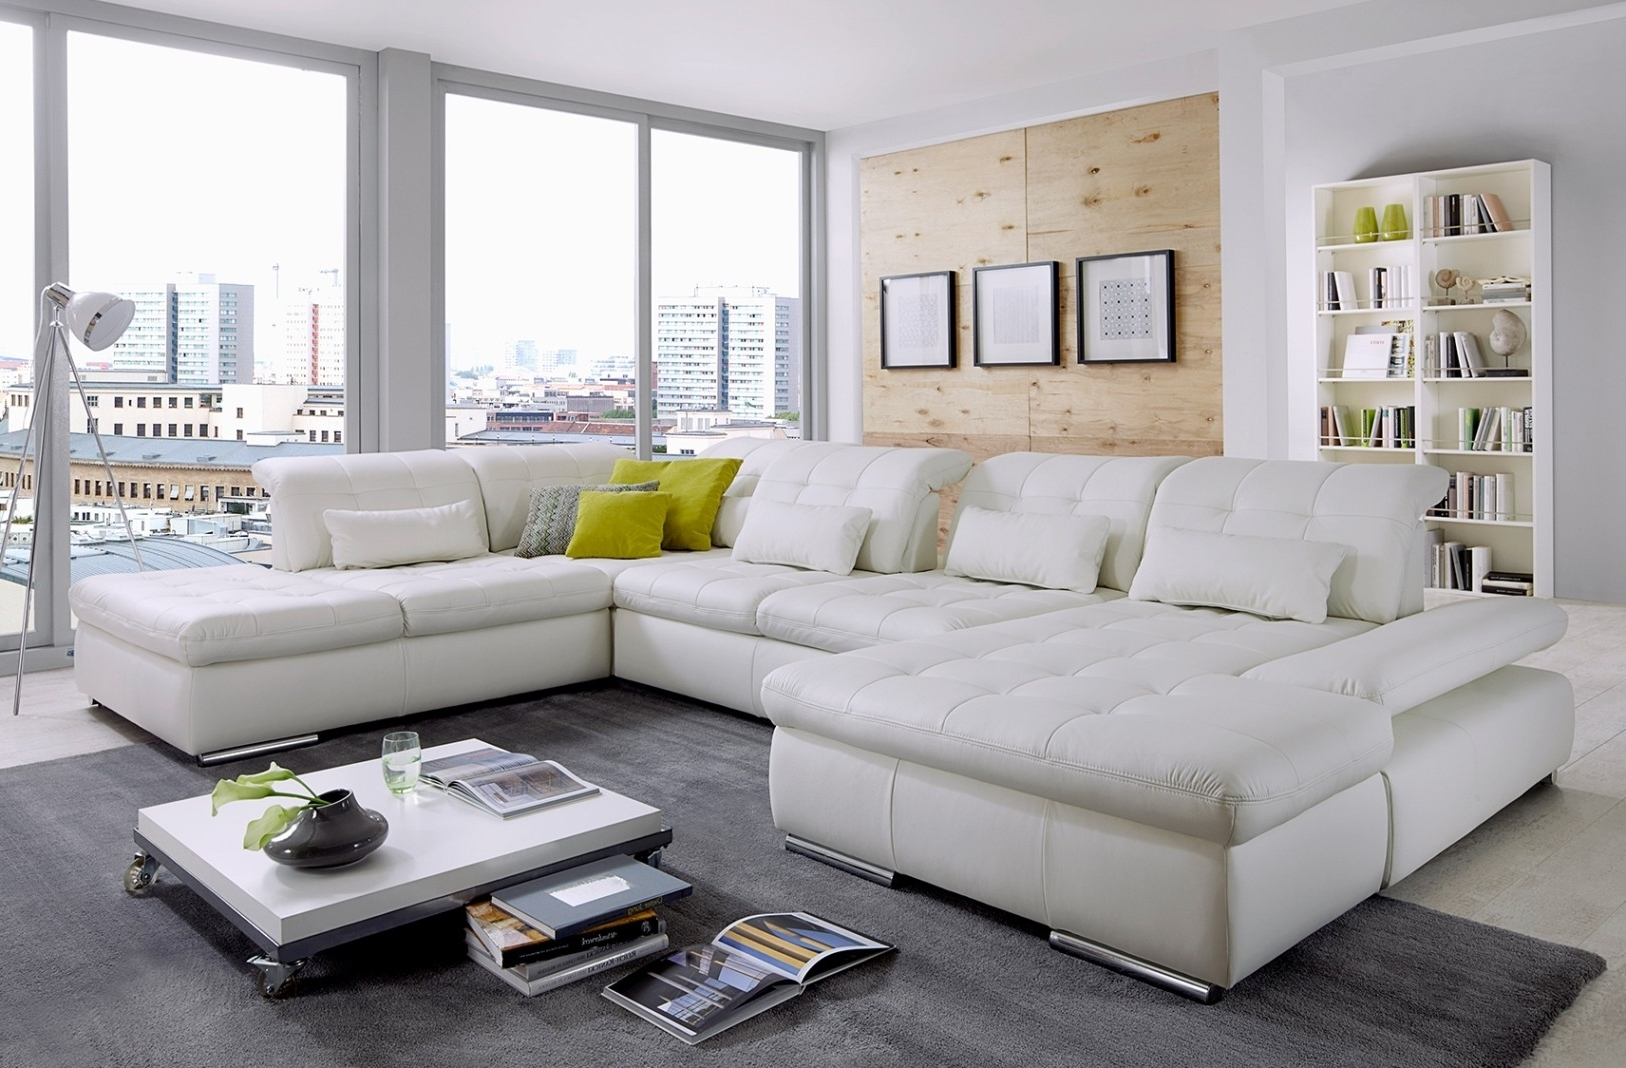 Philadelphia Sectional Sofas Regarding Well Known Alpine Sectional Sofa In Punch White Leather (View 10 of 20)